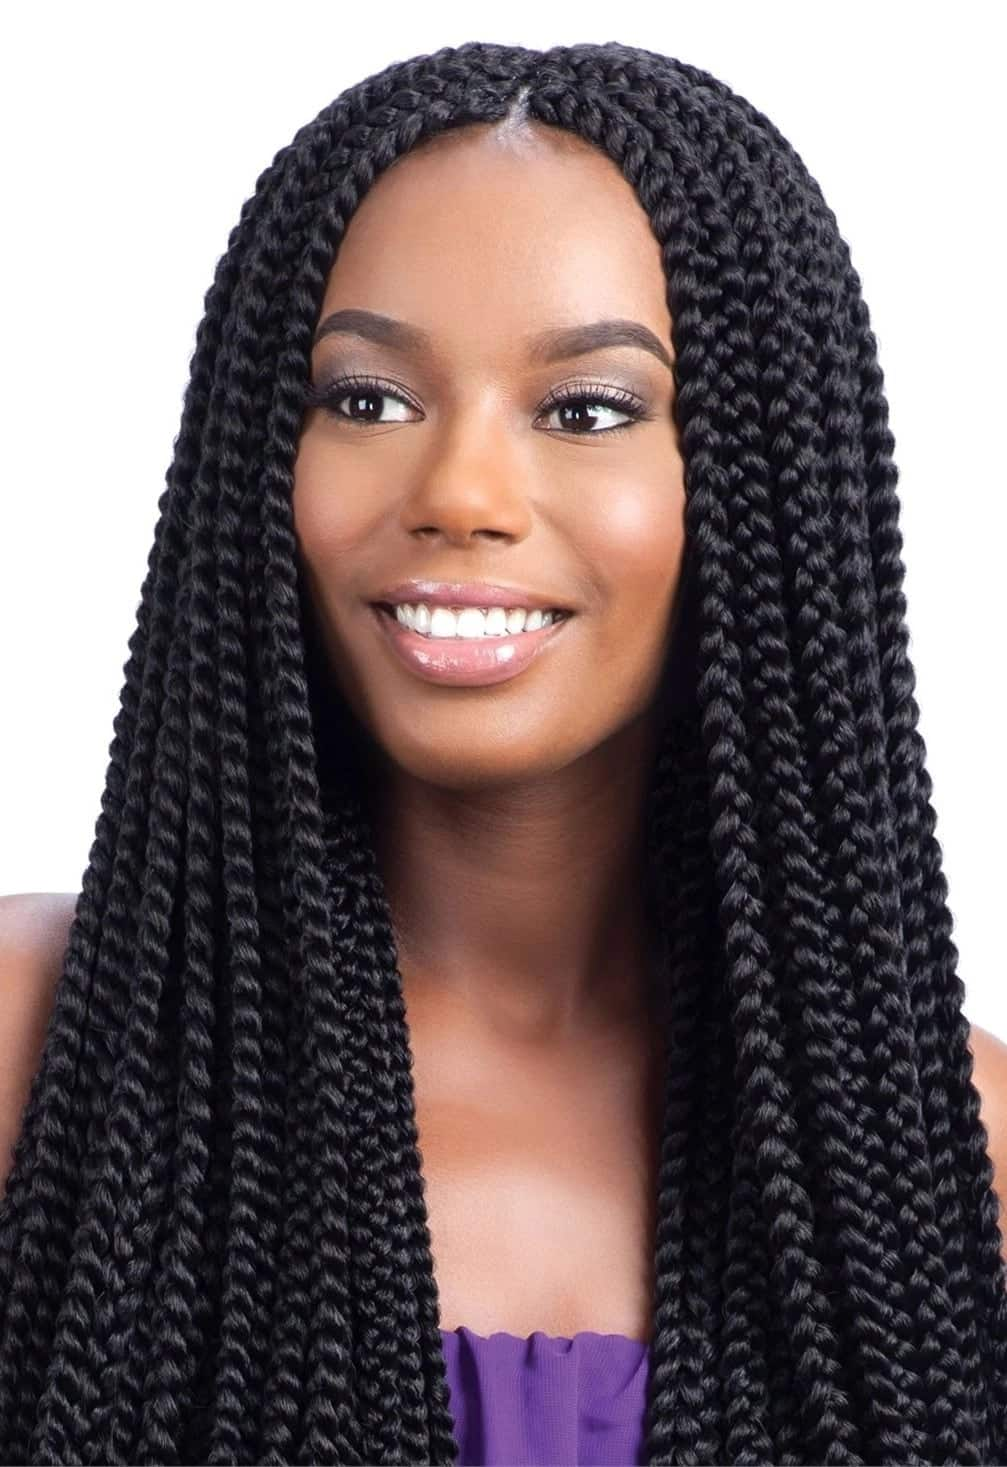 black braided hairstyles african braided hairstyles braided hairstyles for black girls styles to do with box braids